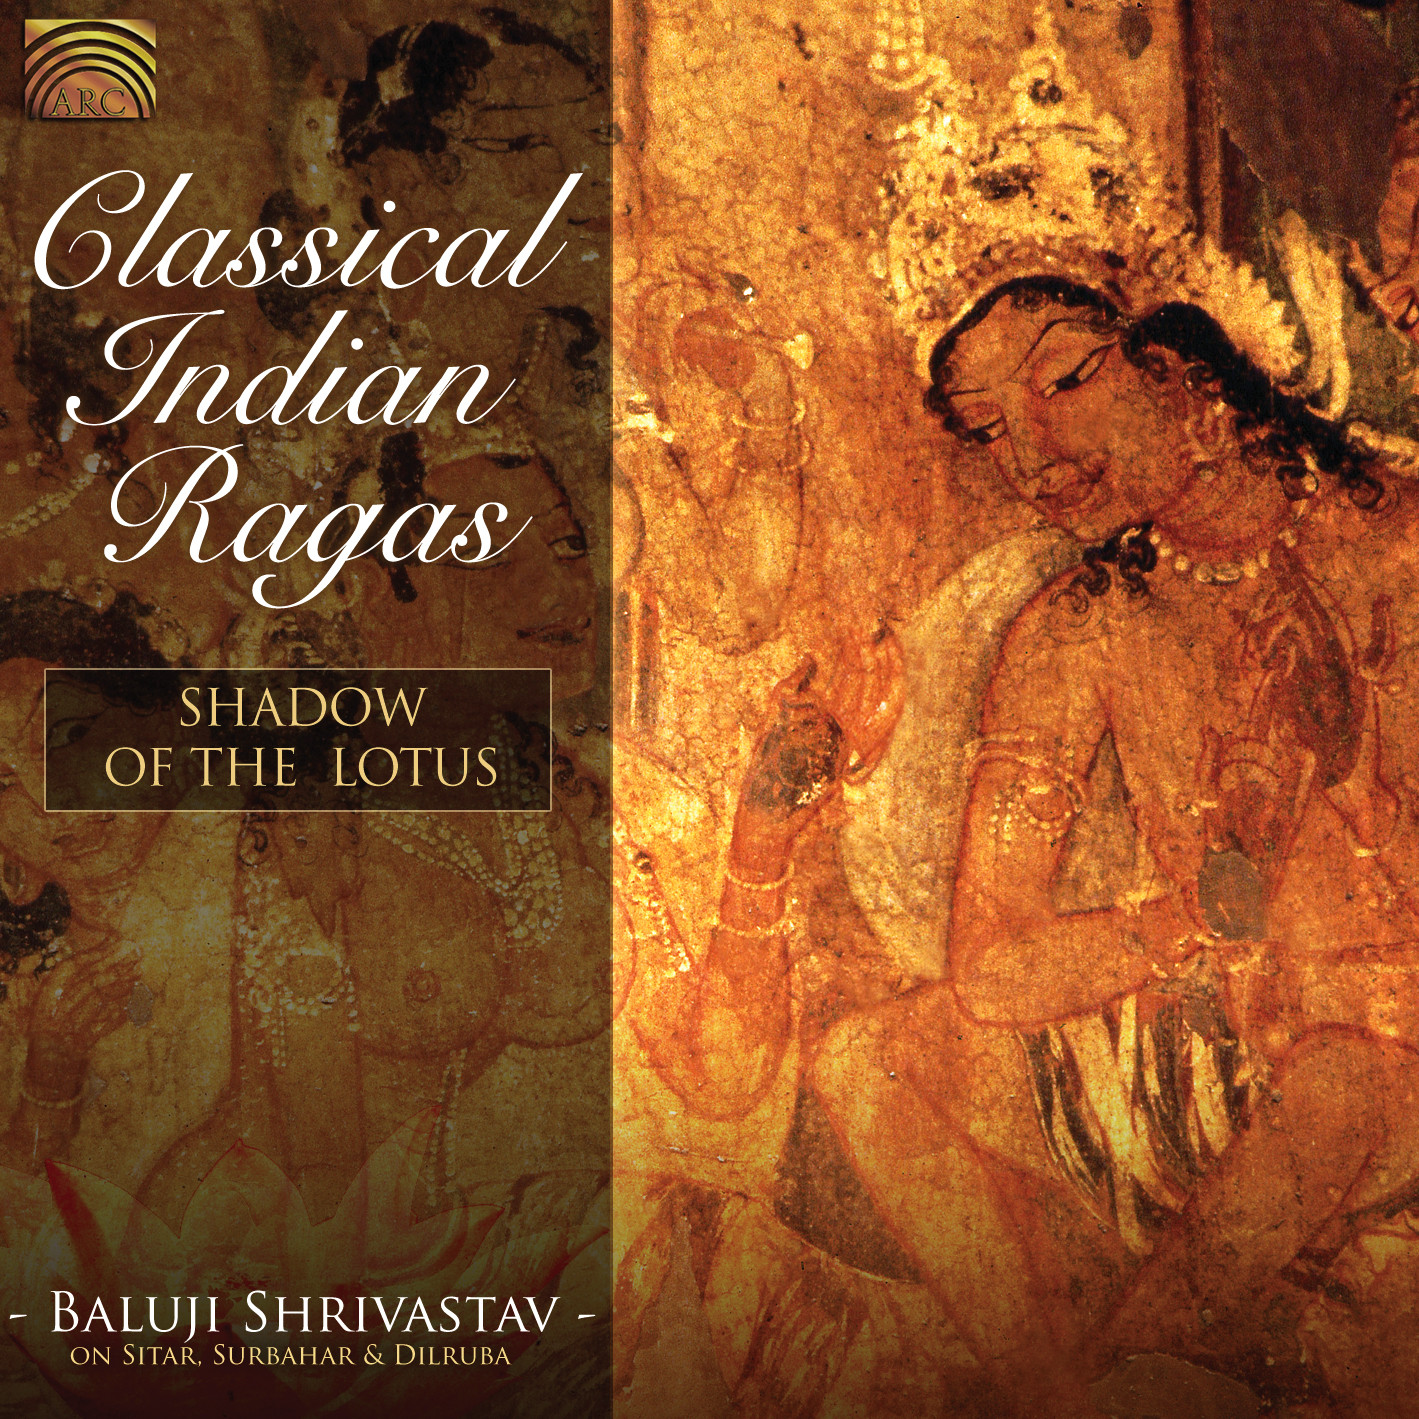 EUCD2061 Classical Indian Ragas - Shadow of the Lotus